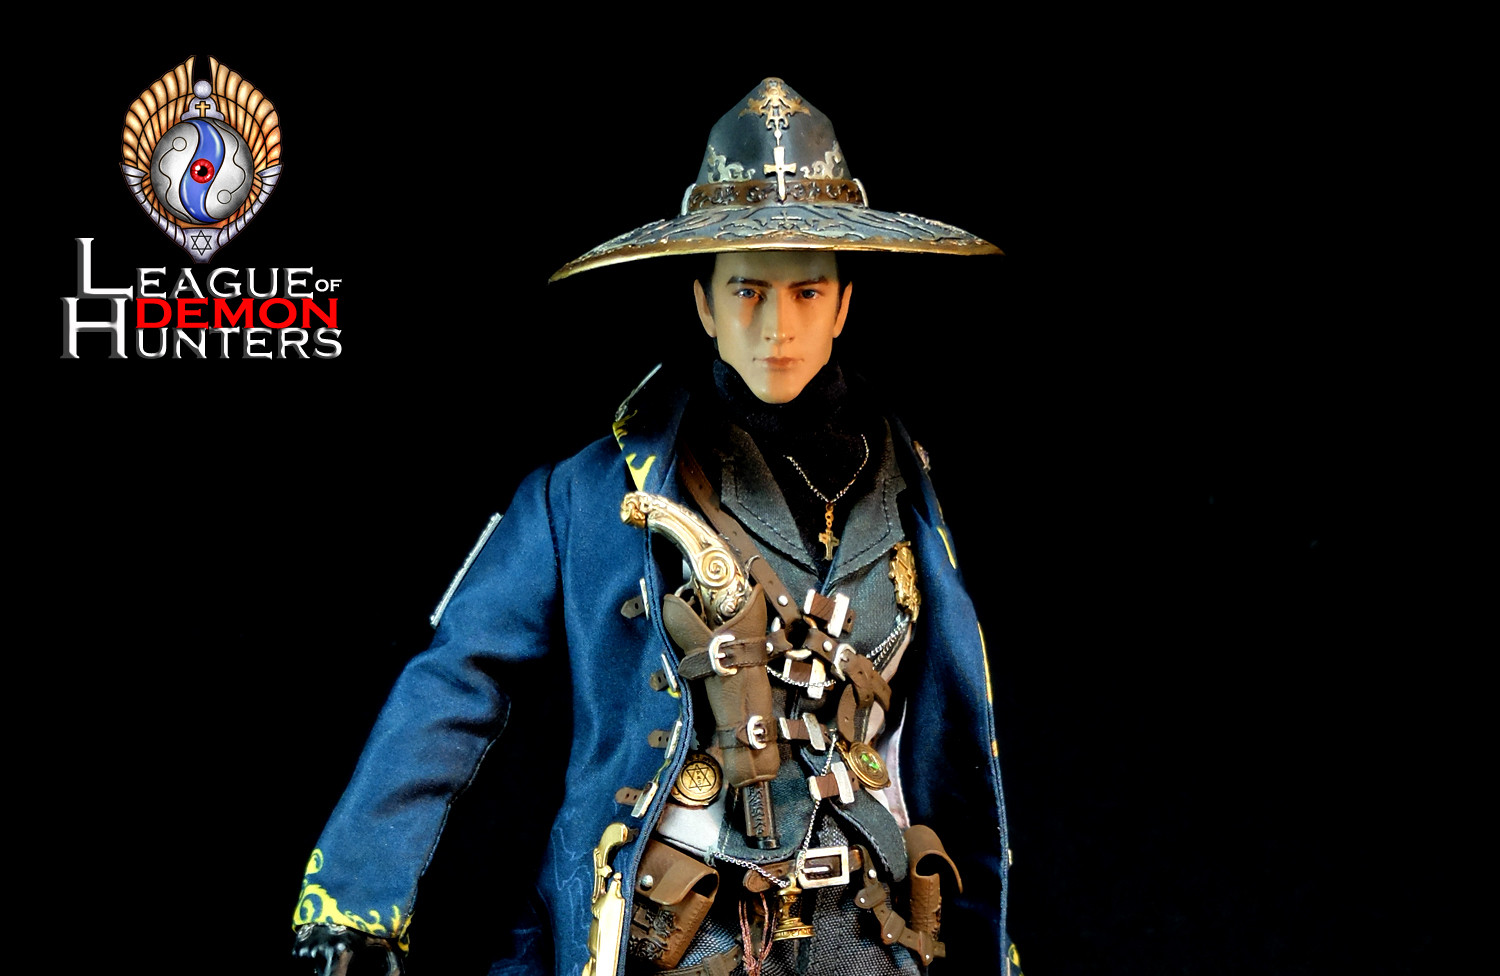 League of Demon Hunters I Paul the Holy Disciple  Original Design by GATE TOYS